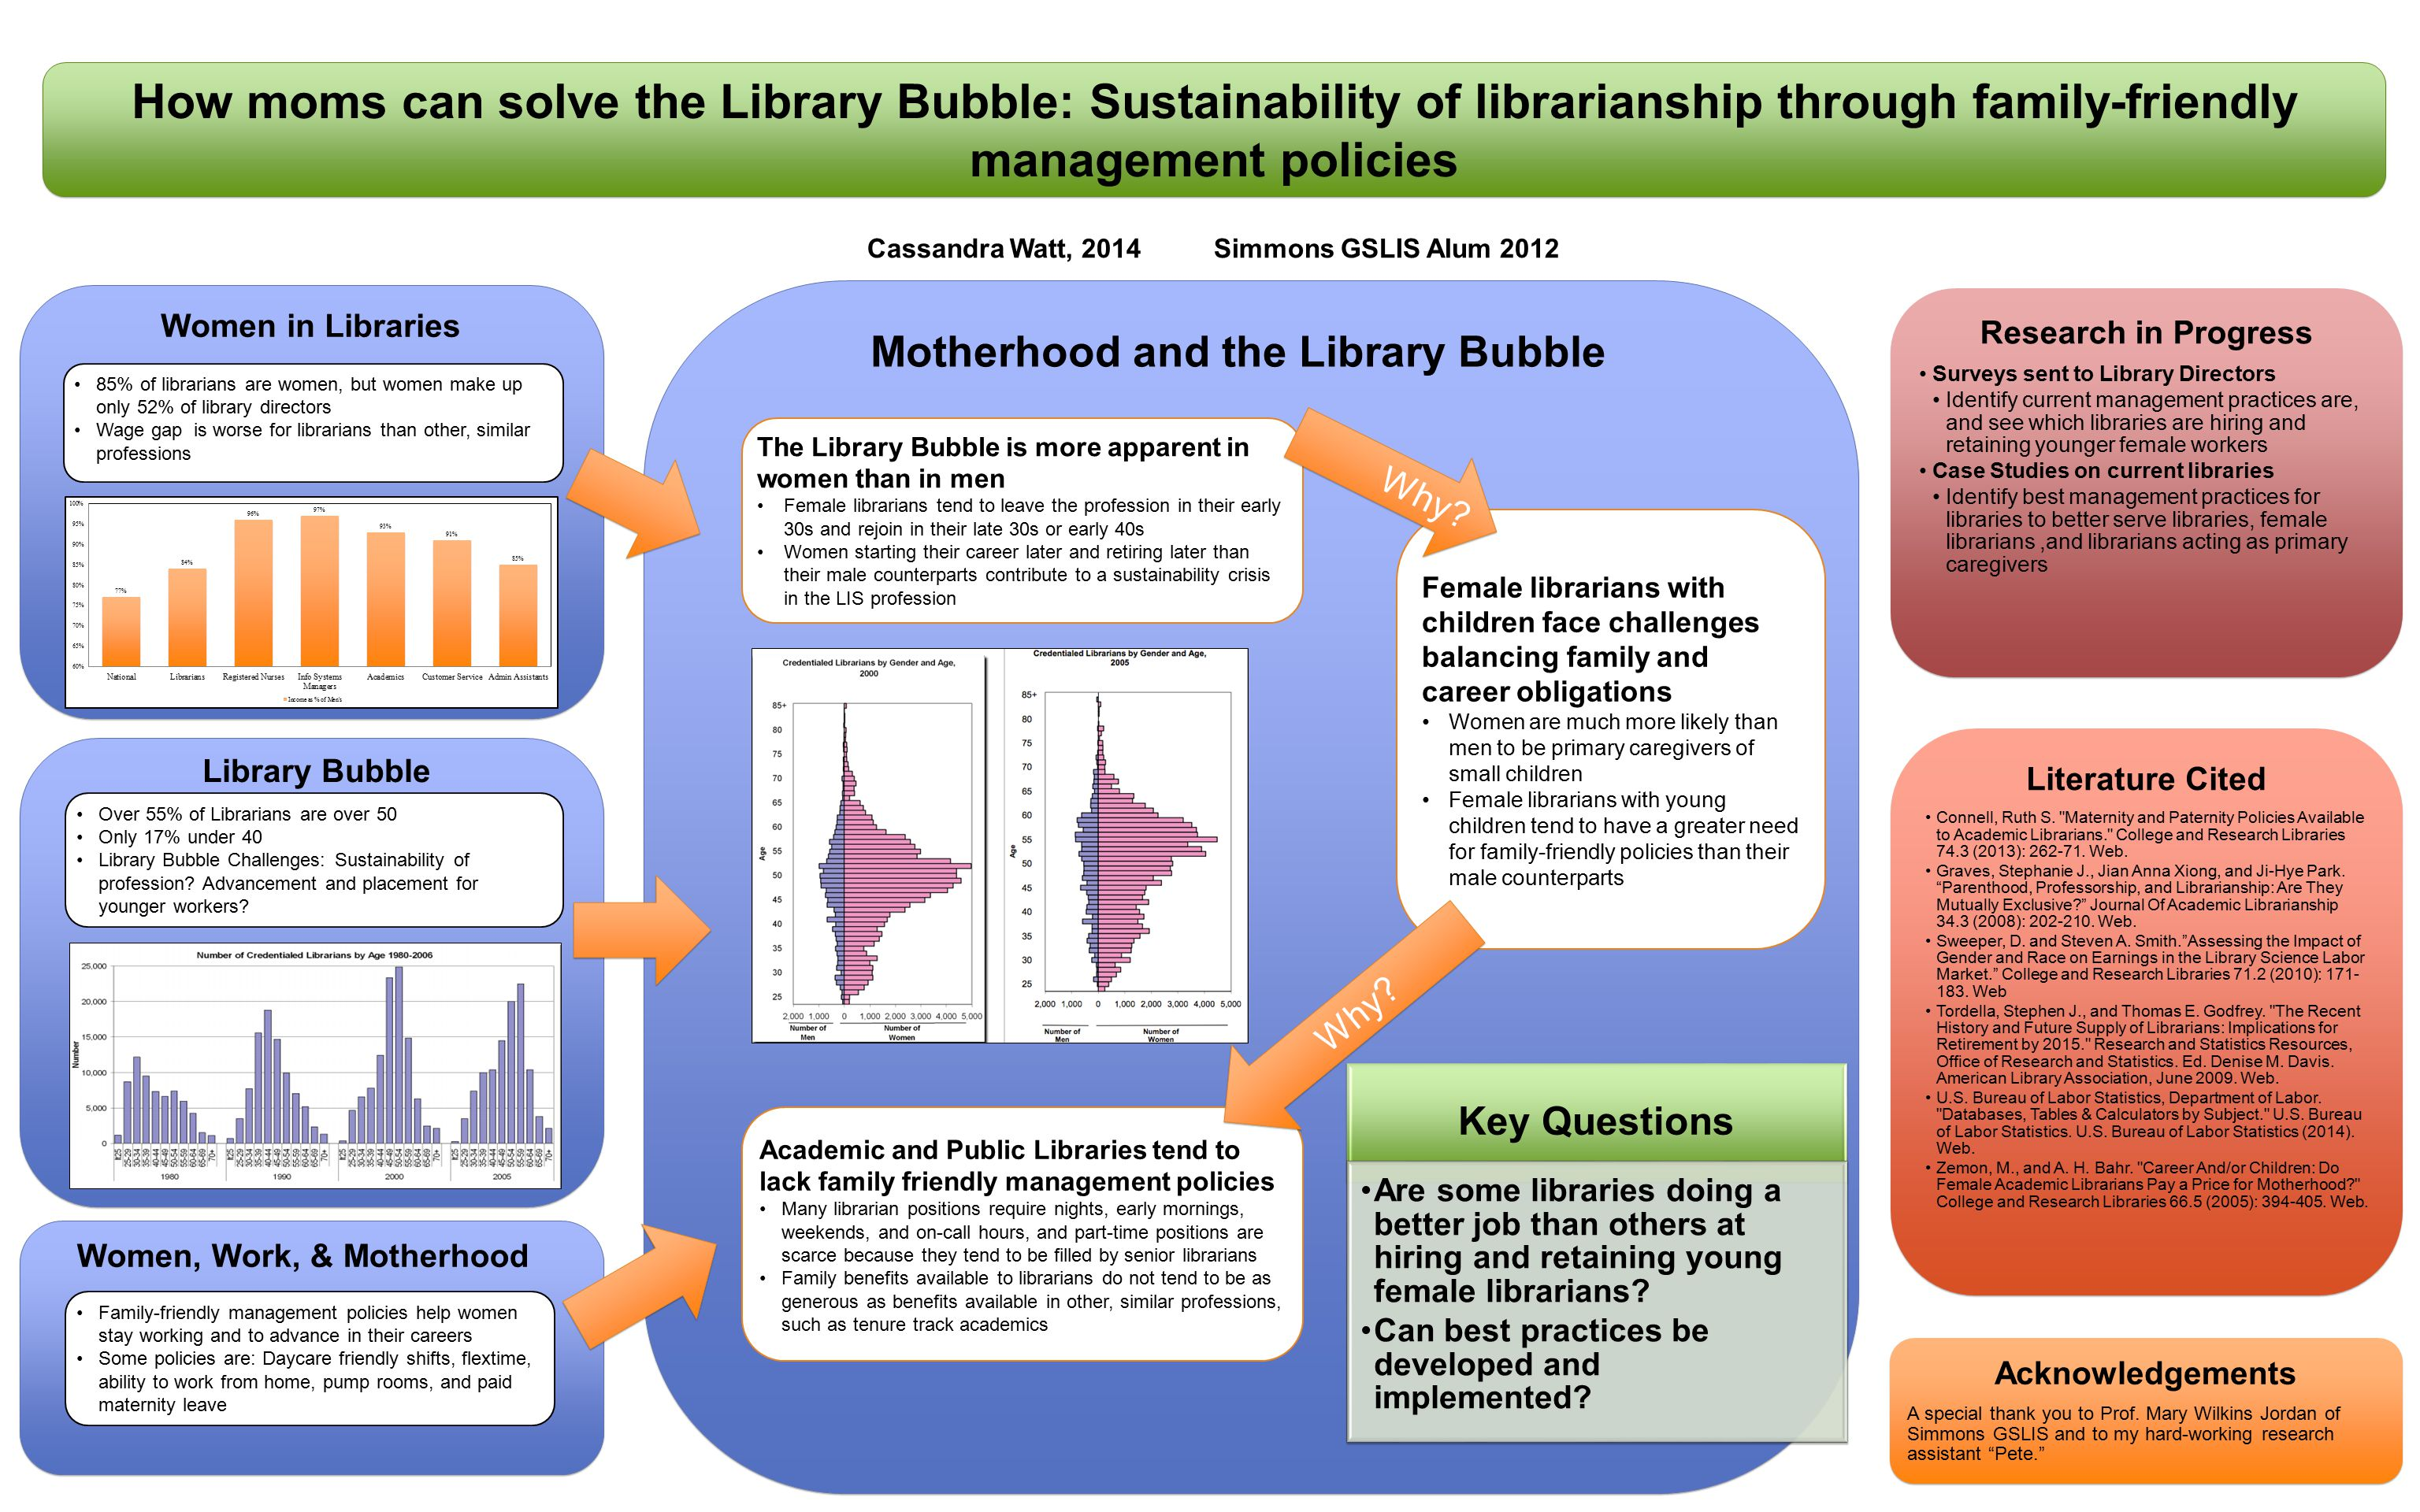 Sustainabili ty, librarianshi p, and family- friendly policies Women in libraries 83% of Librarians are women X% of Directors are women Women retire x years later than men X% get tenture X% work part-time Female librarians make x% of male librarians The Librarian Bubble (70%) graduating MLIS are under 30.